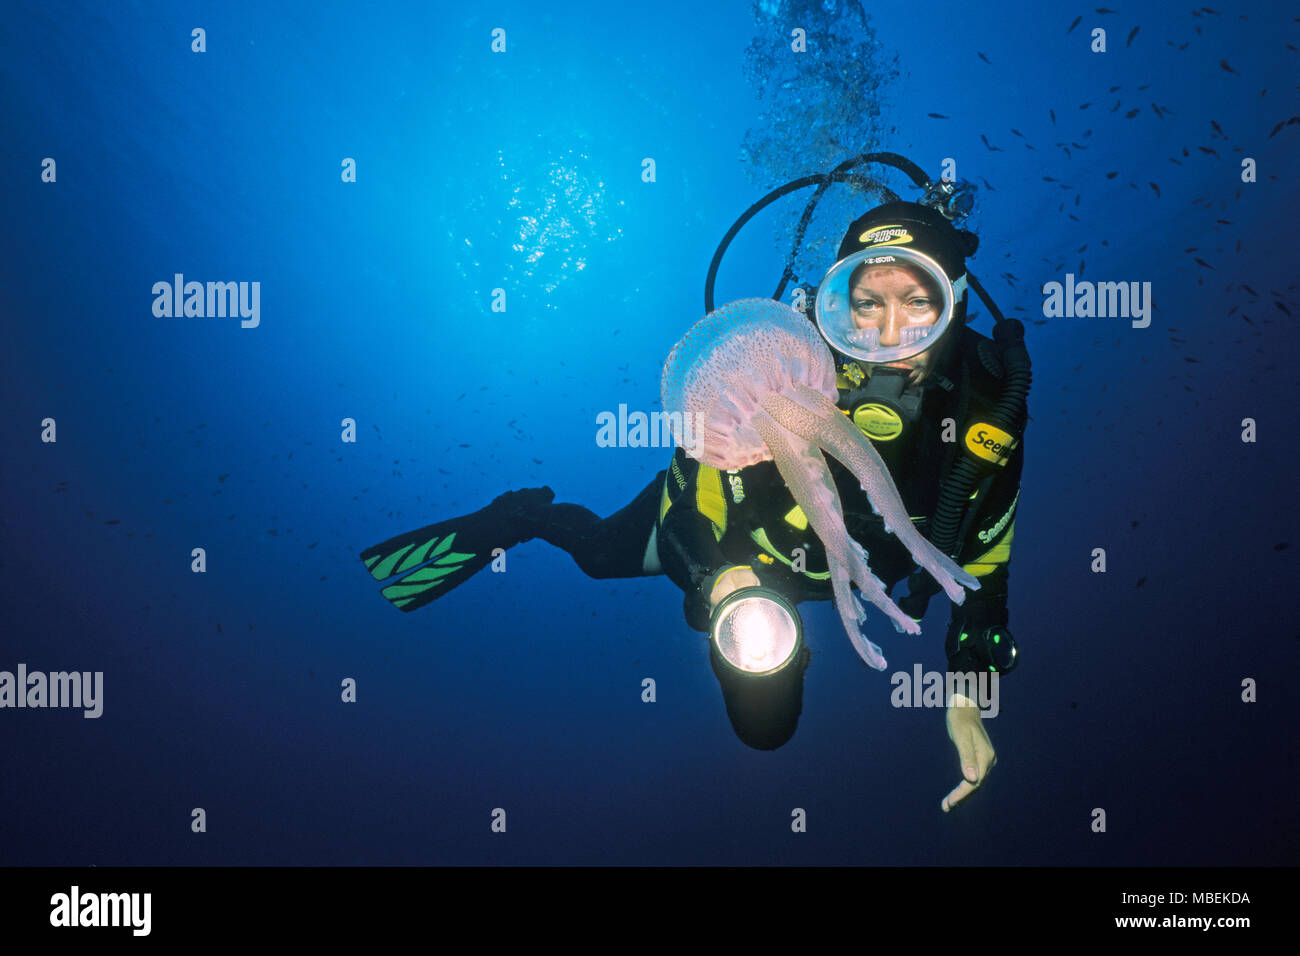 Scuba diver and fire jellyfish, mauve stinger, warty jelly (Pelagia noctiluca), dangerous, Corsica island, France - Stock Image